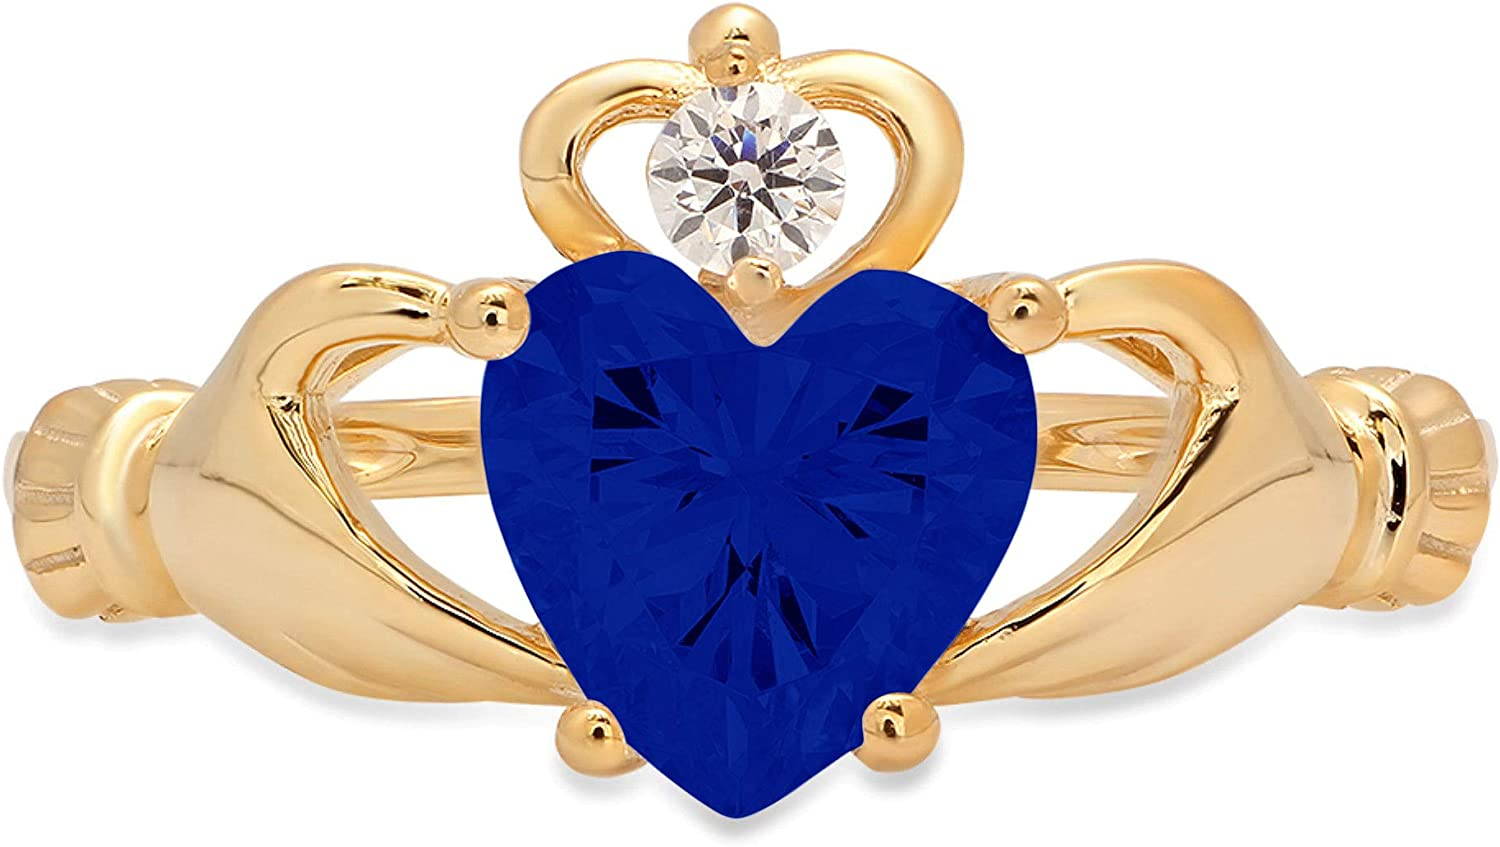 1.52ct Heart Cut Irish Celtic Claddagh Solitaire Flawless Simulated Blue Sapphire VVS1 Designer Modern Statement Ring Solid 14k Yellow Gold